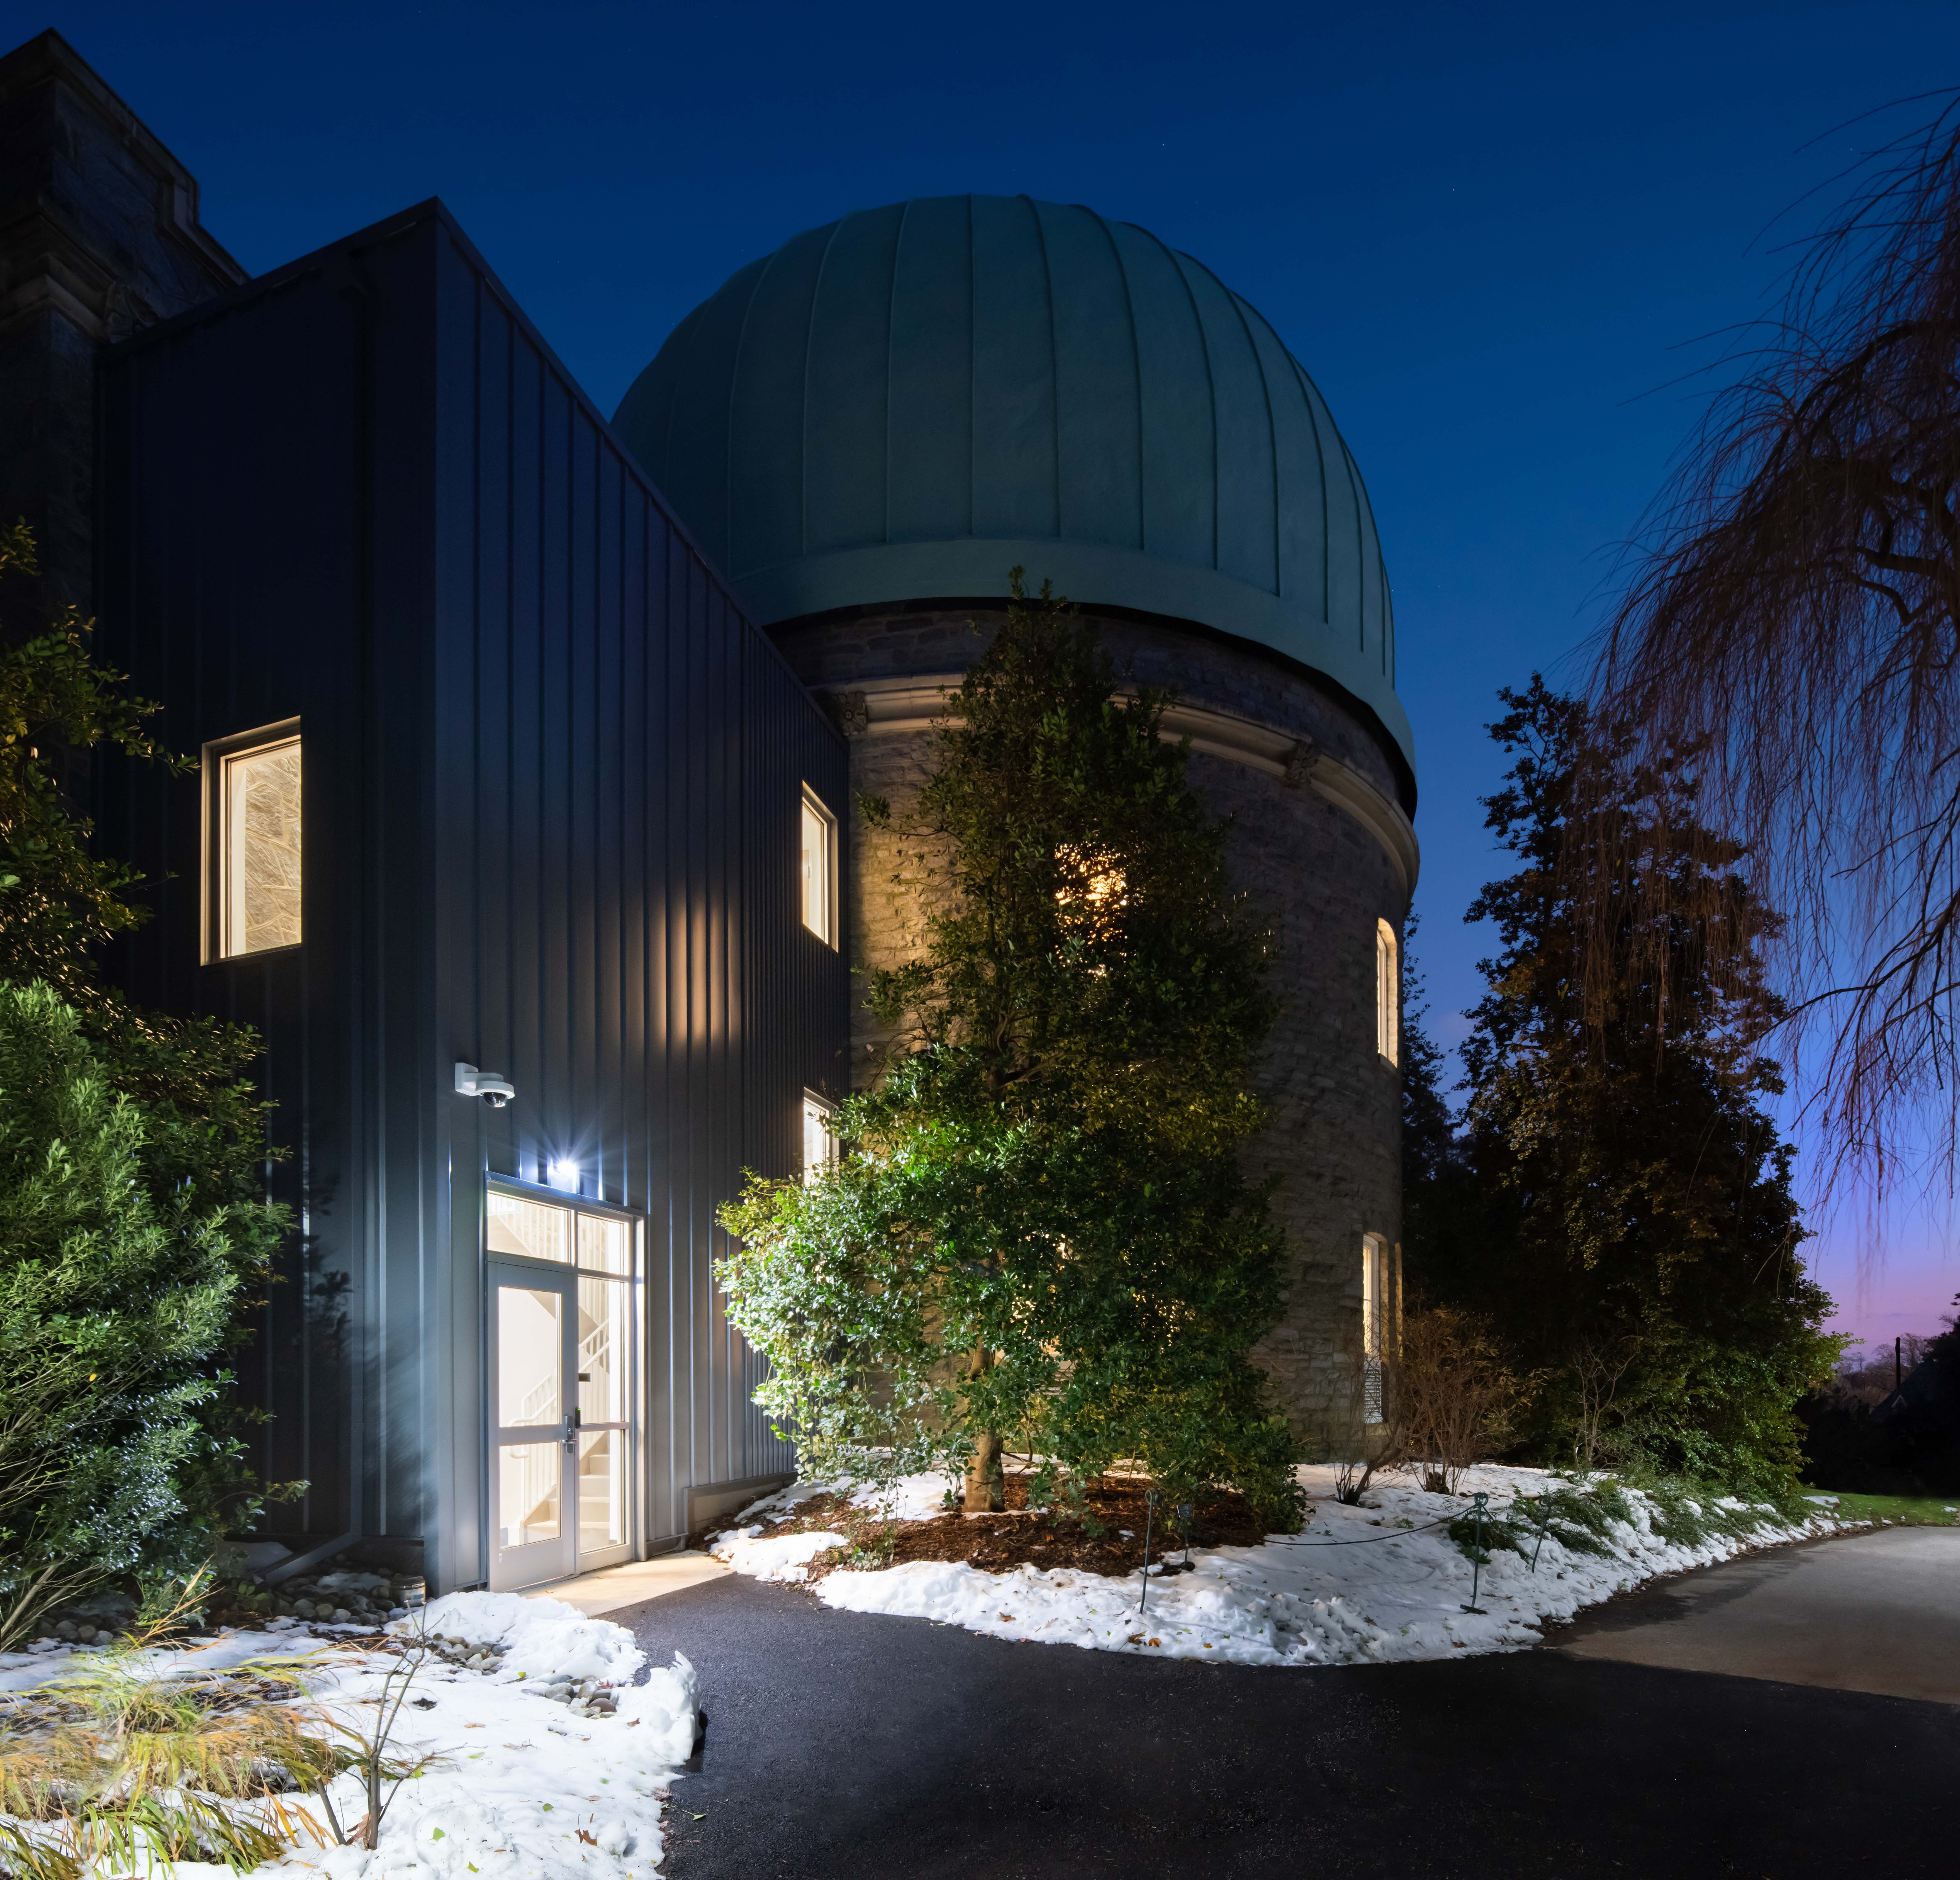 Sproul Observatory at Swarthmore College